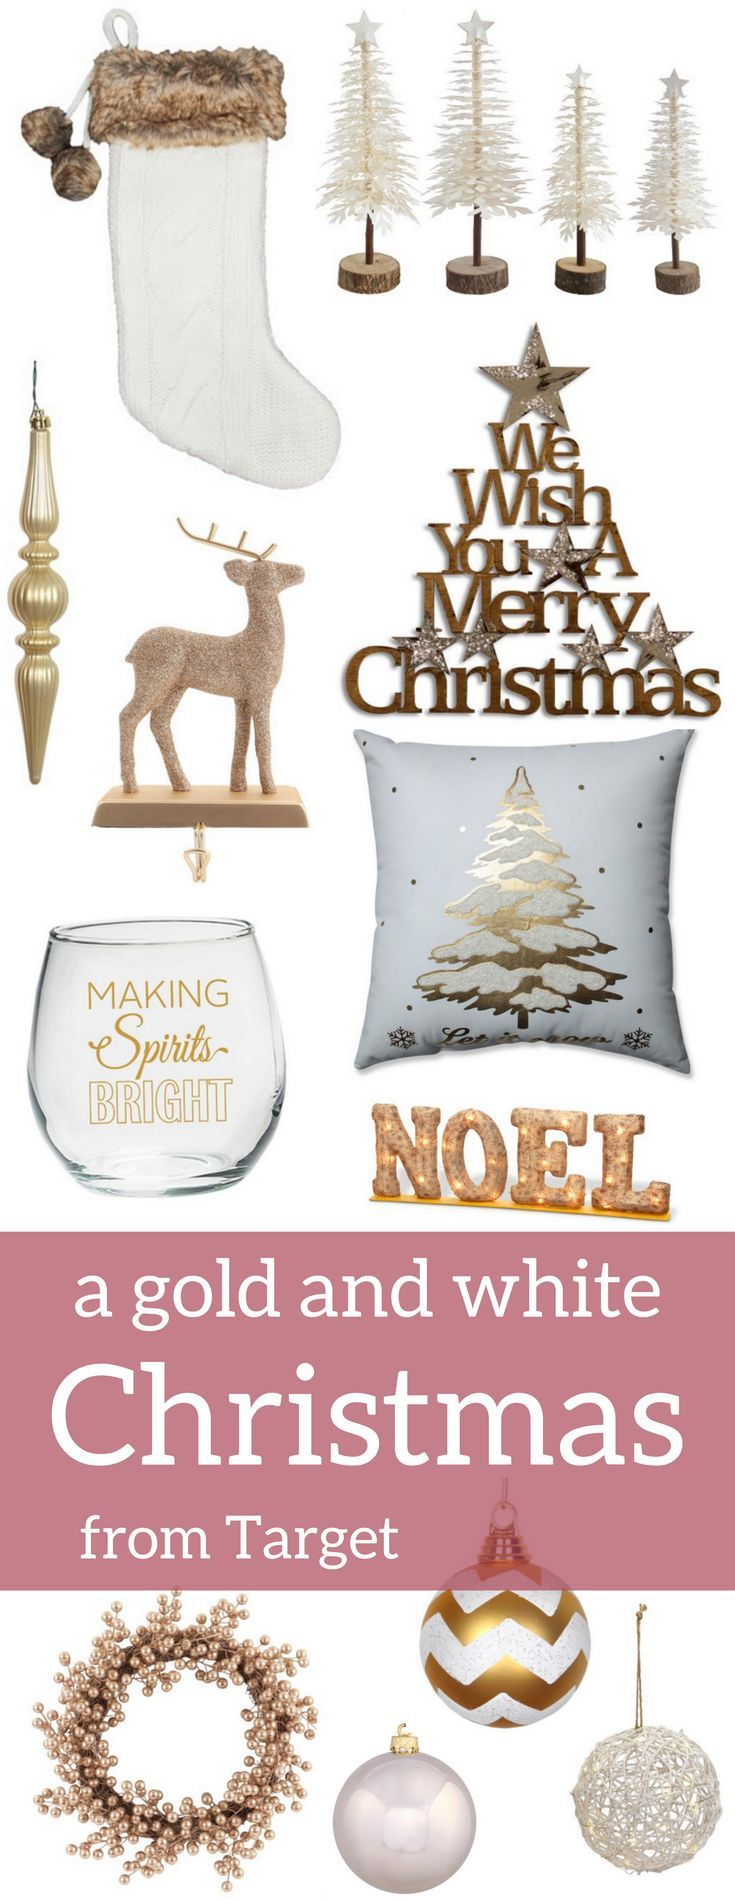 A Gold and White Christmas from Target   For the Home ♥   Pinterest ...